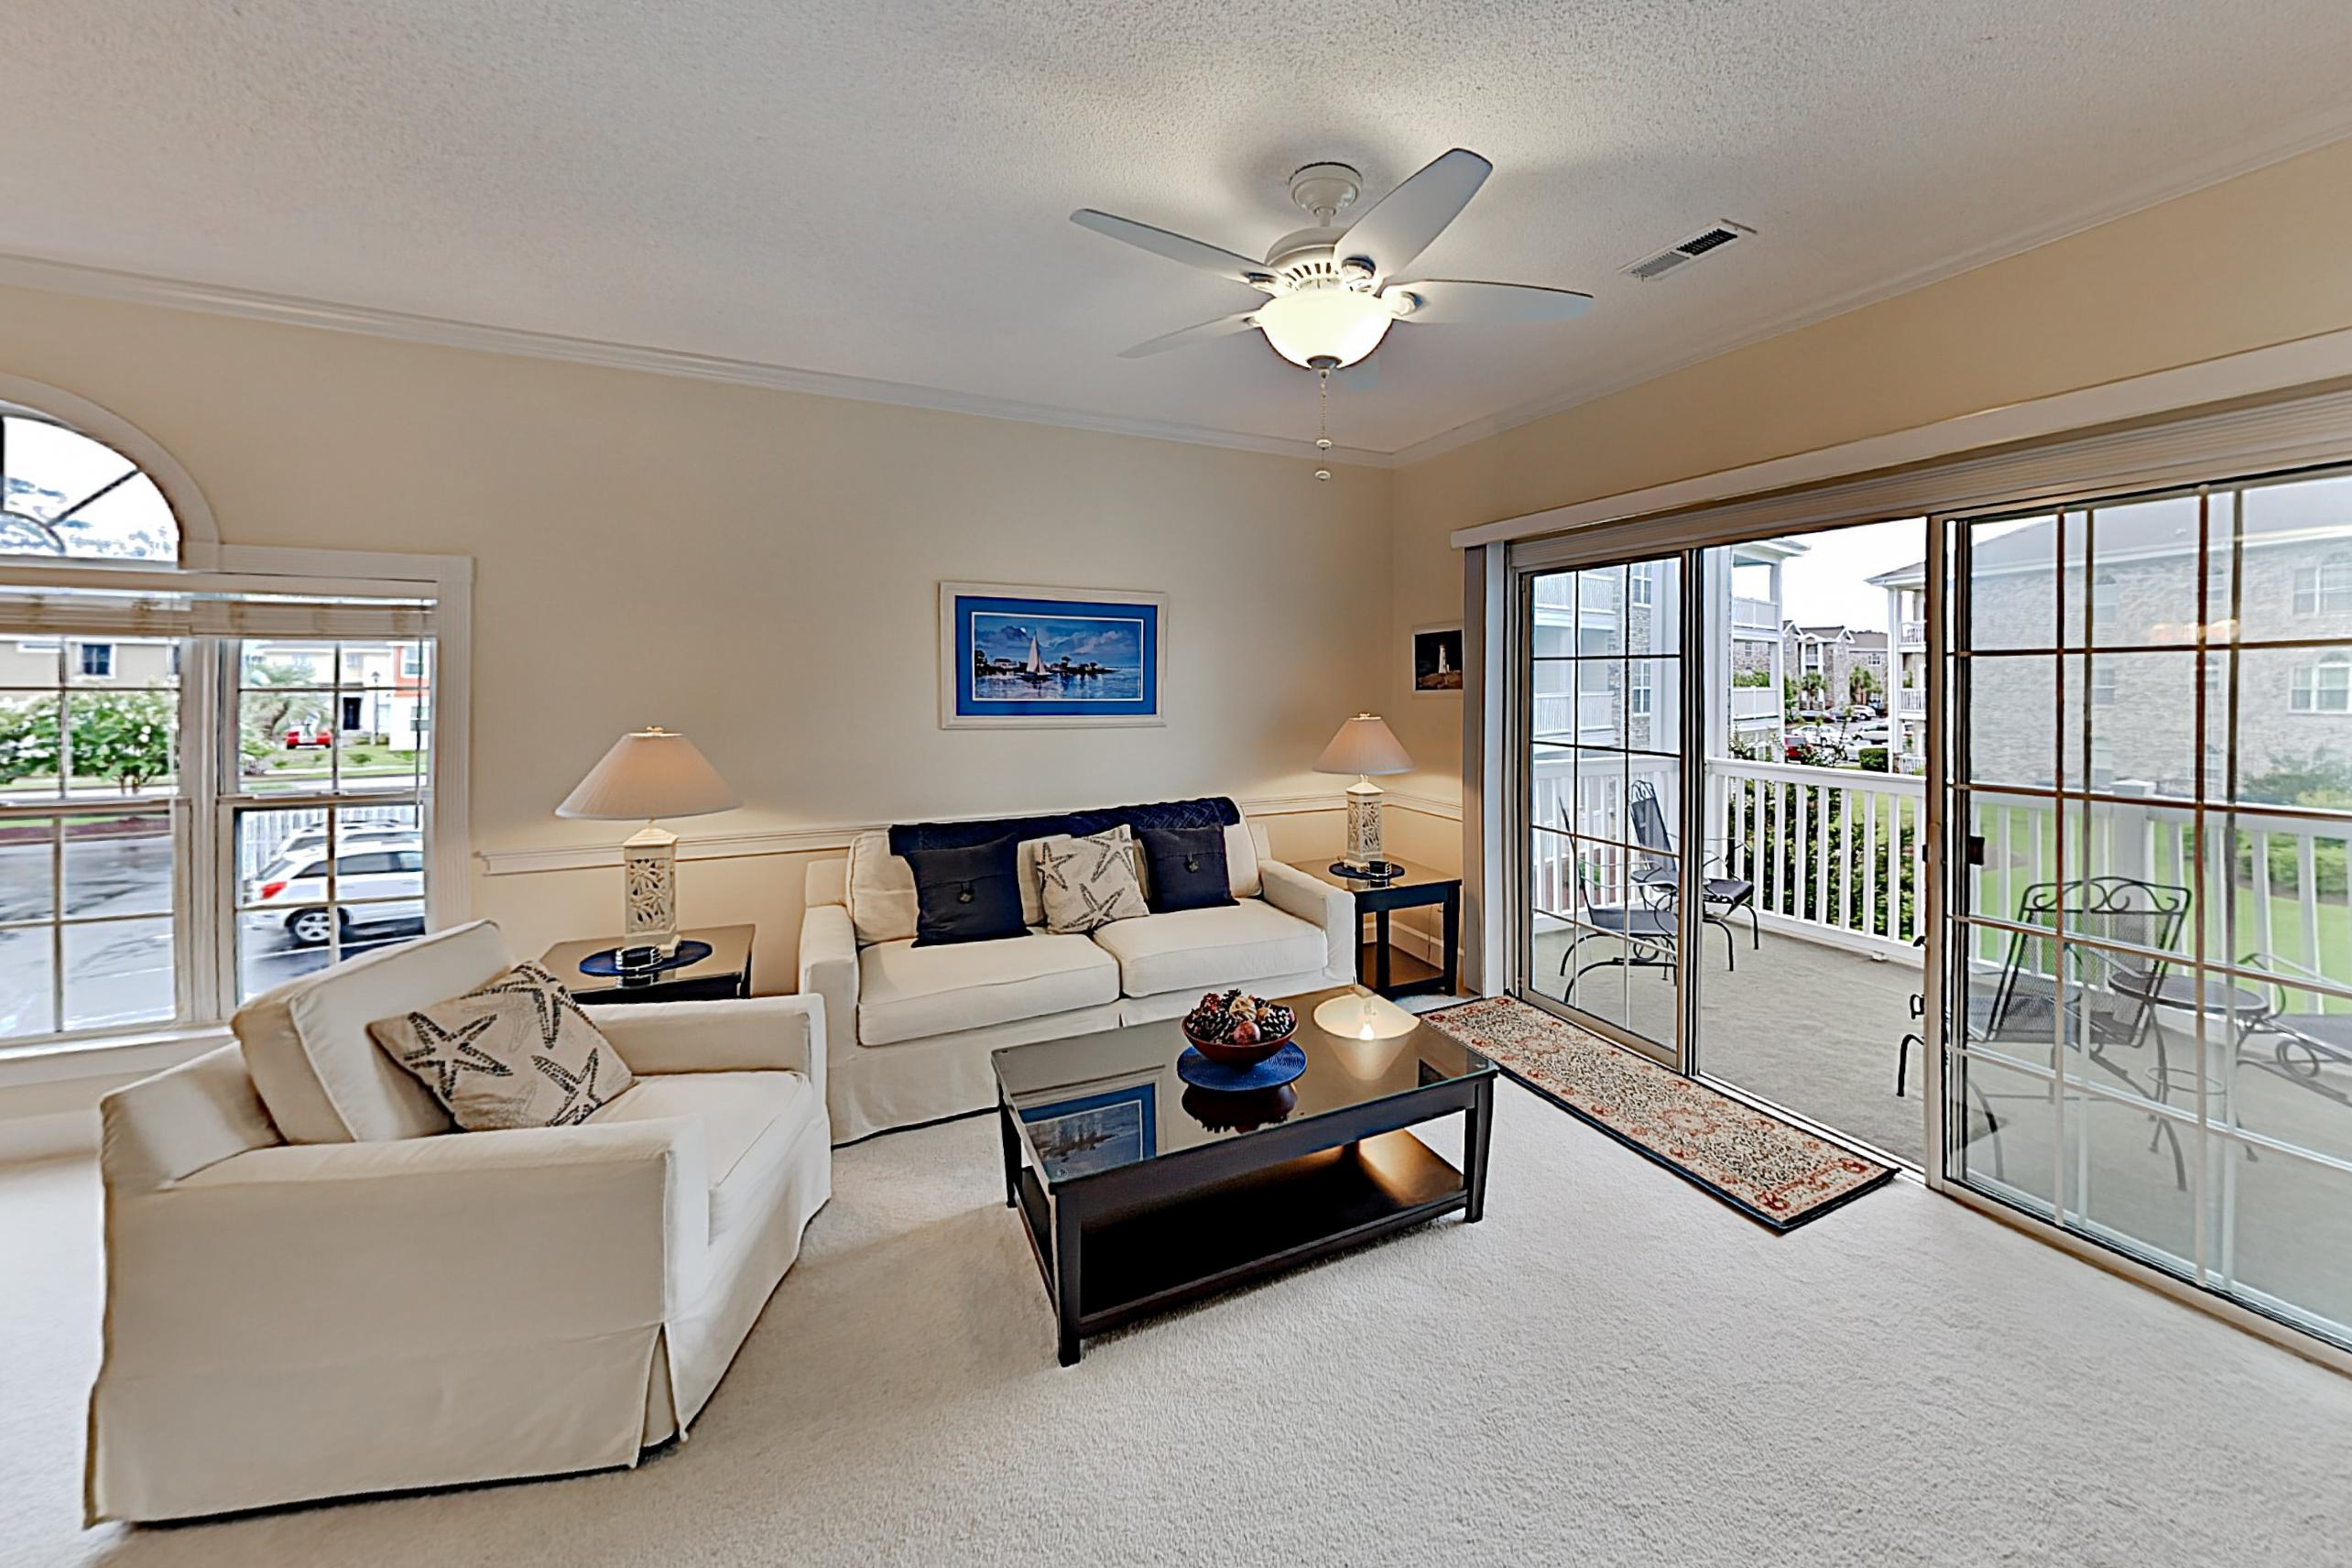 Property Image 1 - Chic Condo w/ Balcony, Pool & Golf Course Views